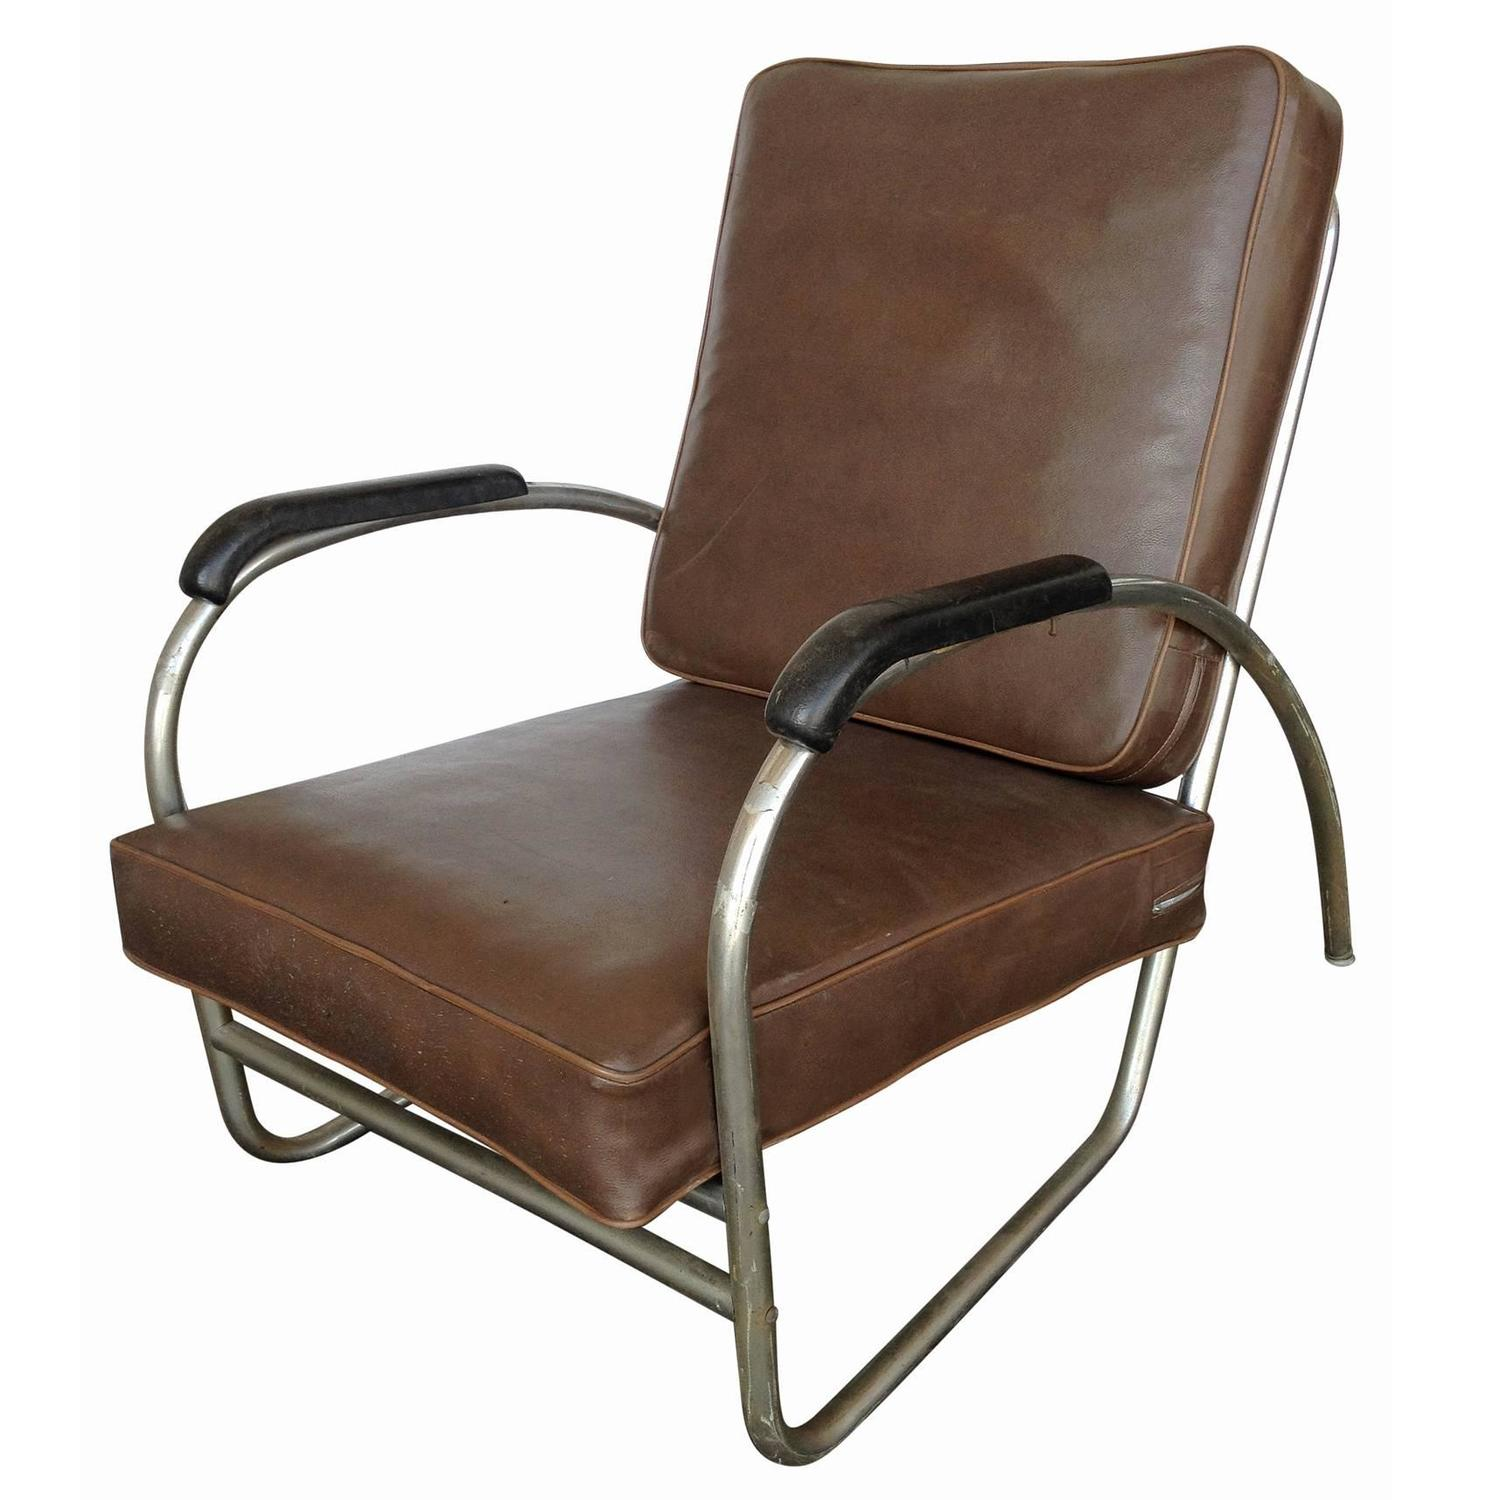 Metal outdoor club chairs - Wolfgang Hoffmann Style Chrome Club Chair By Royal Metal For Sale At 1stdibs